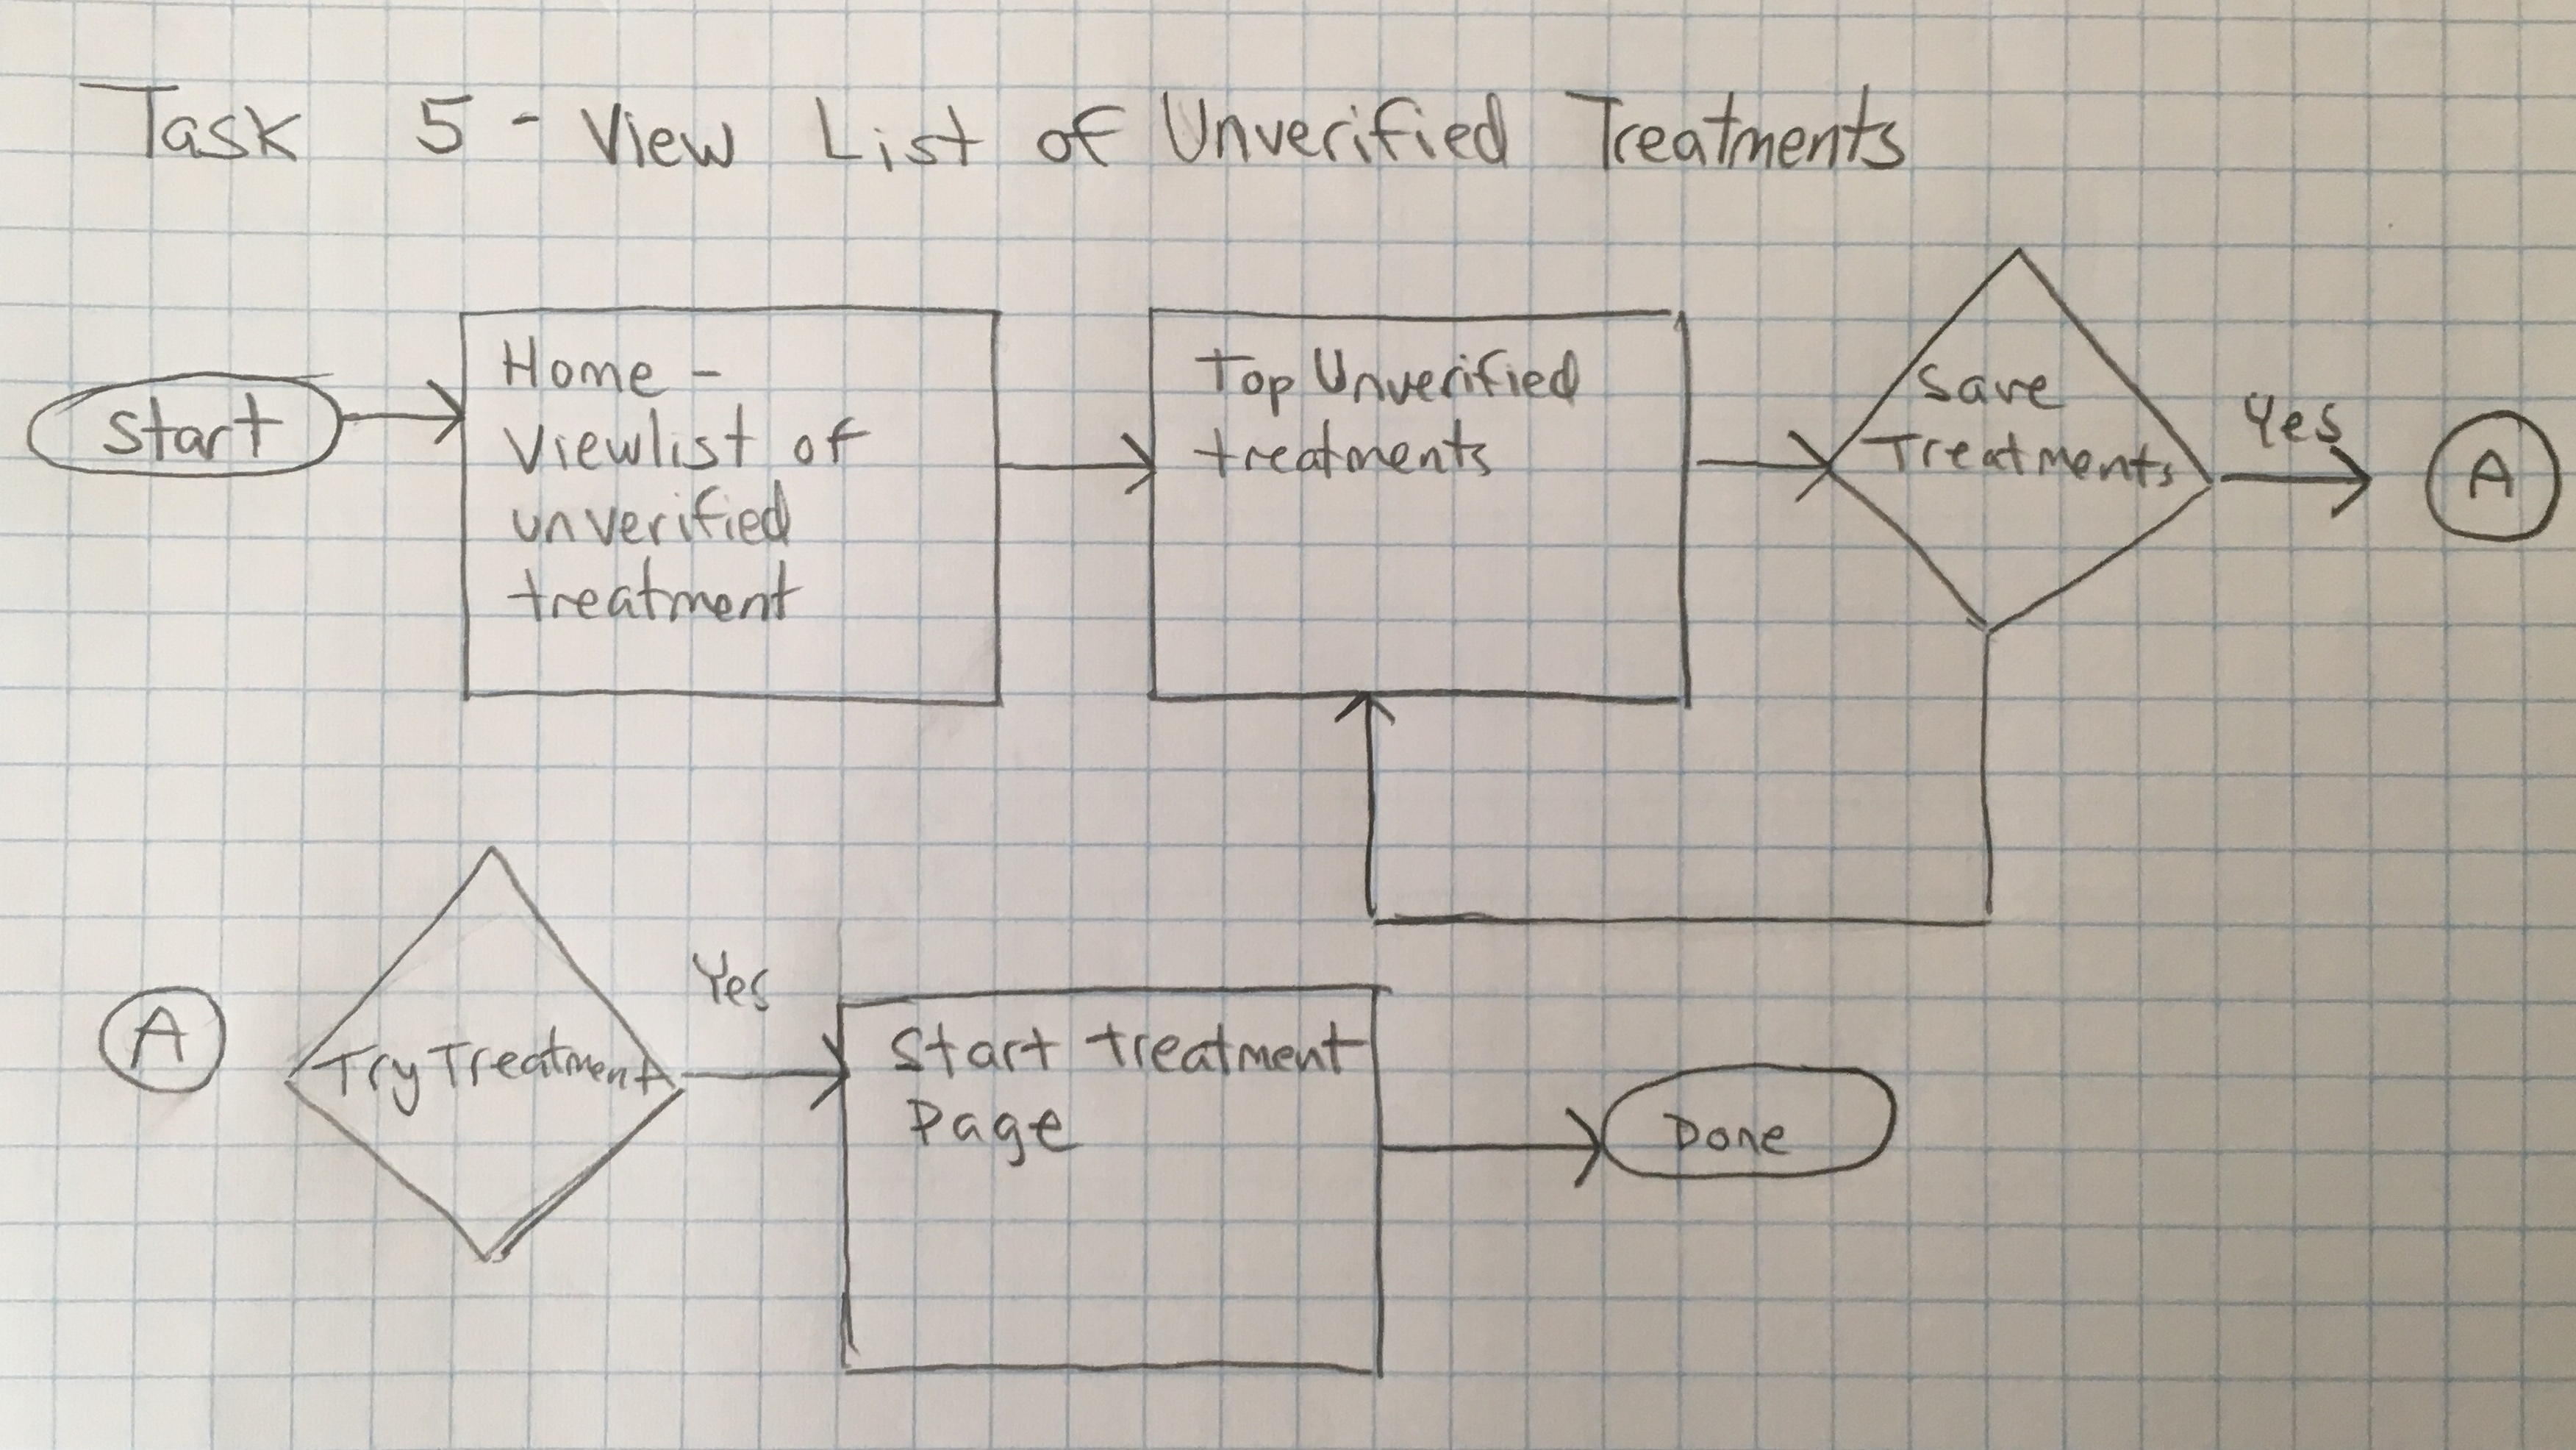 food med task flow 5 view list of unverified treatments